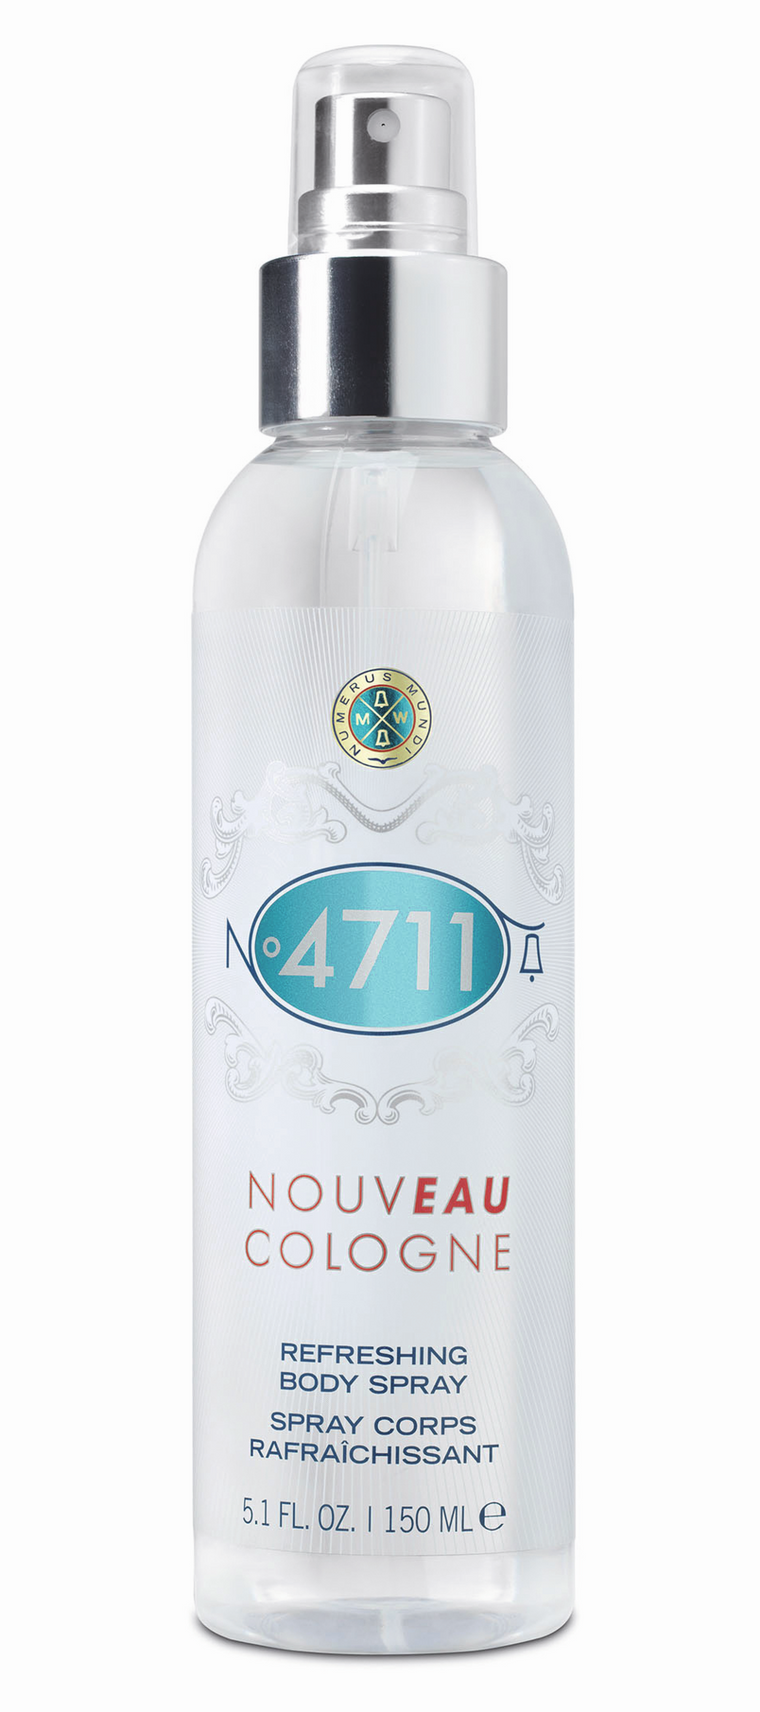 Nouveau cologne 4711 refreshing body spray, 150 ml.